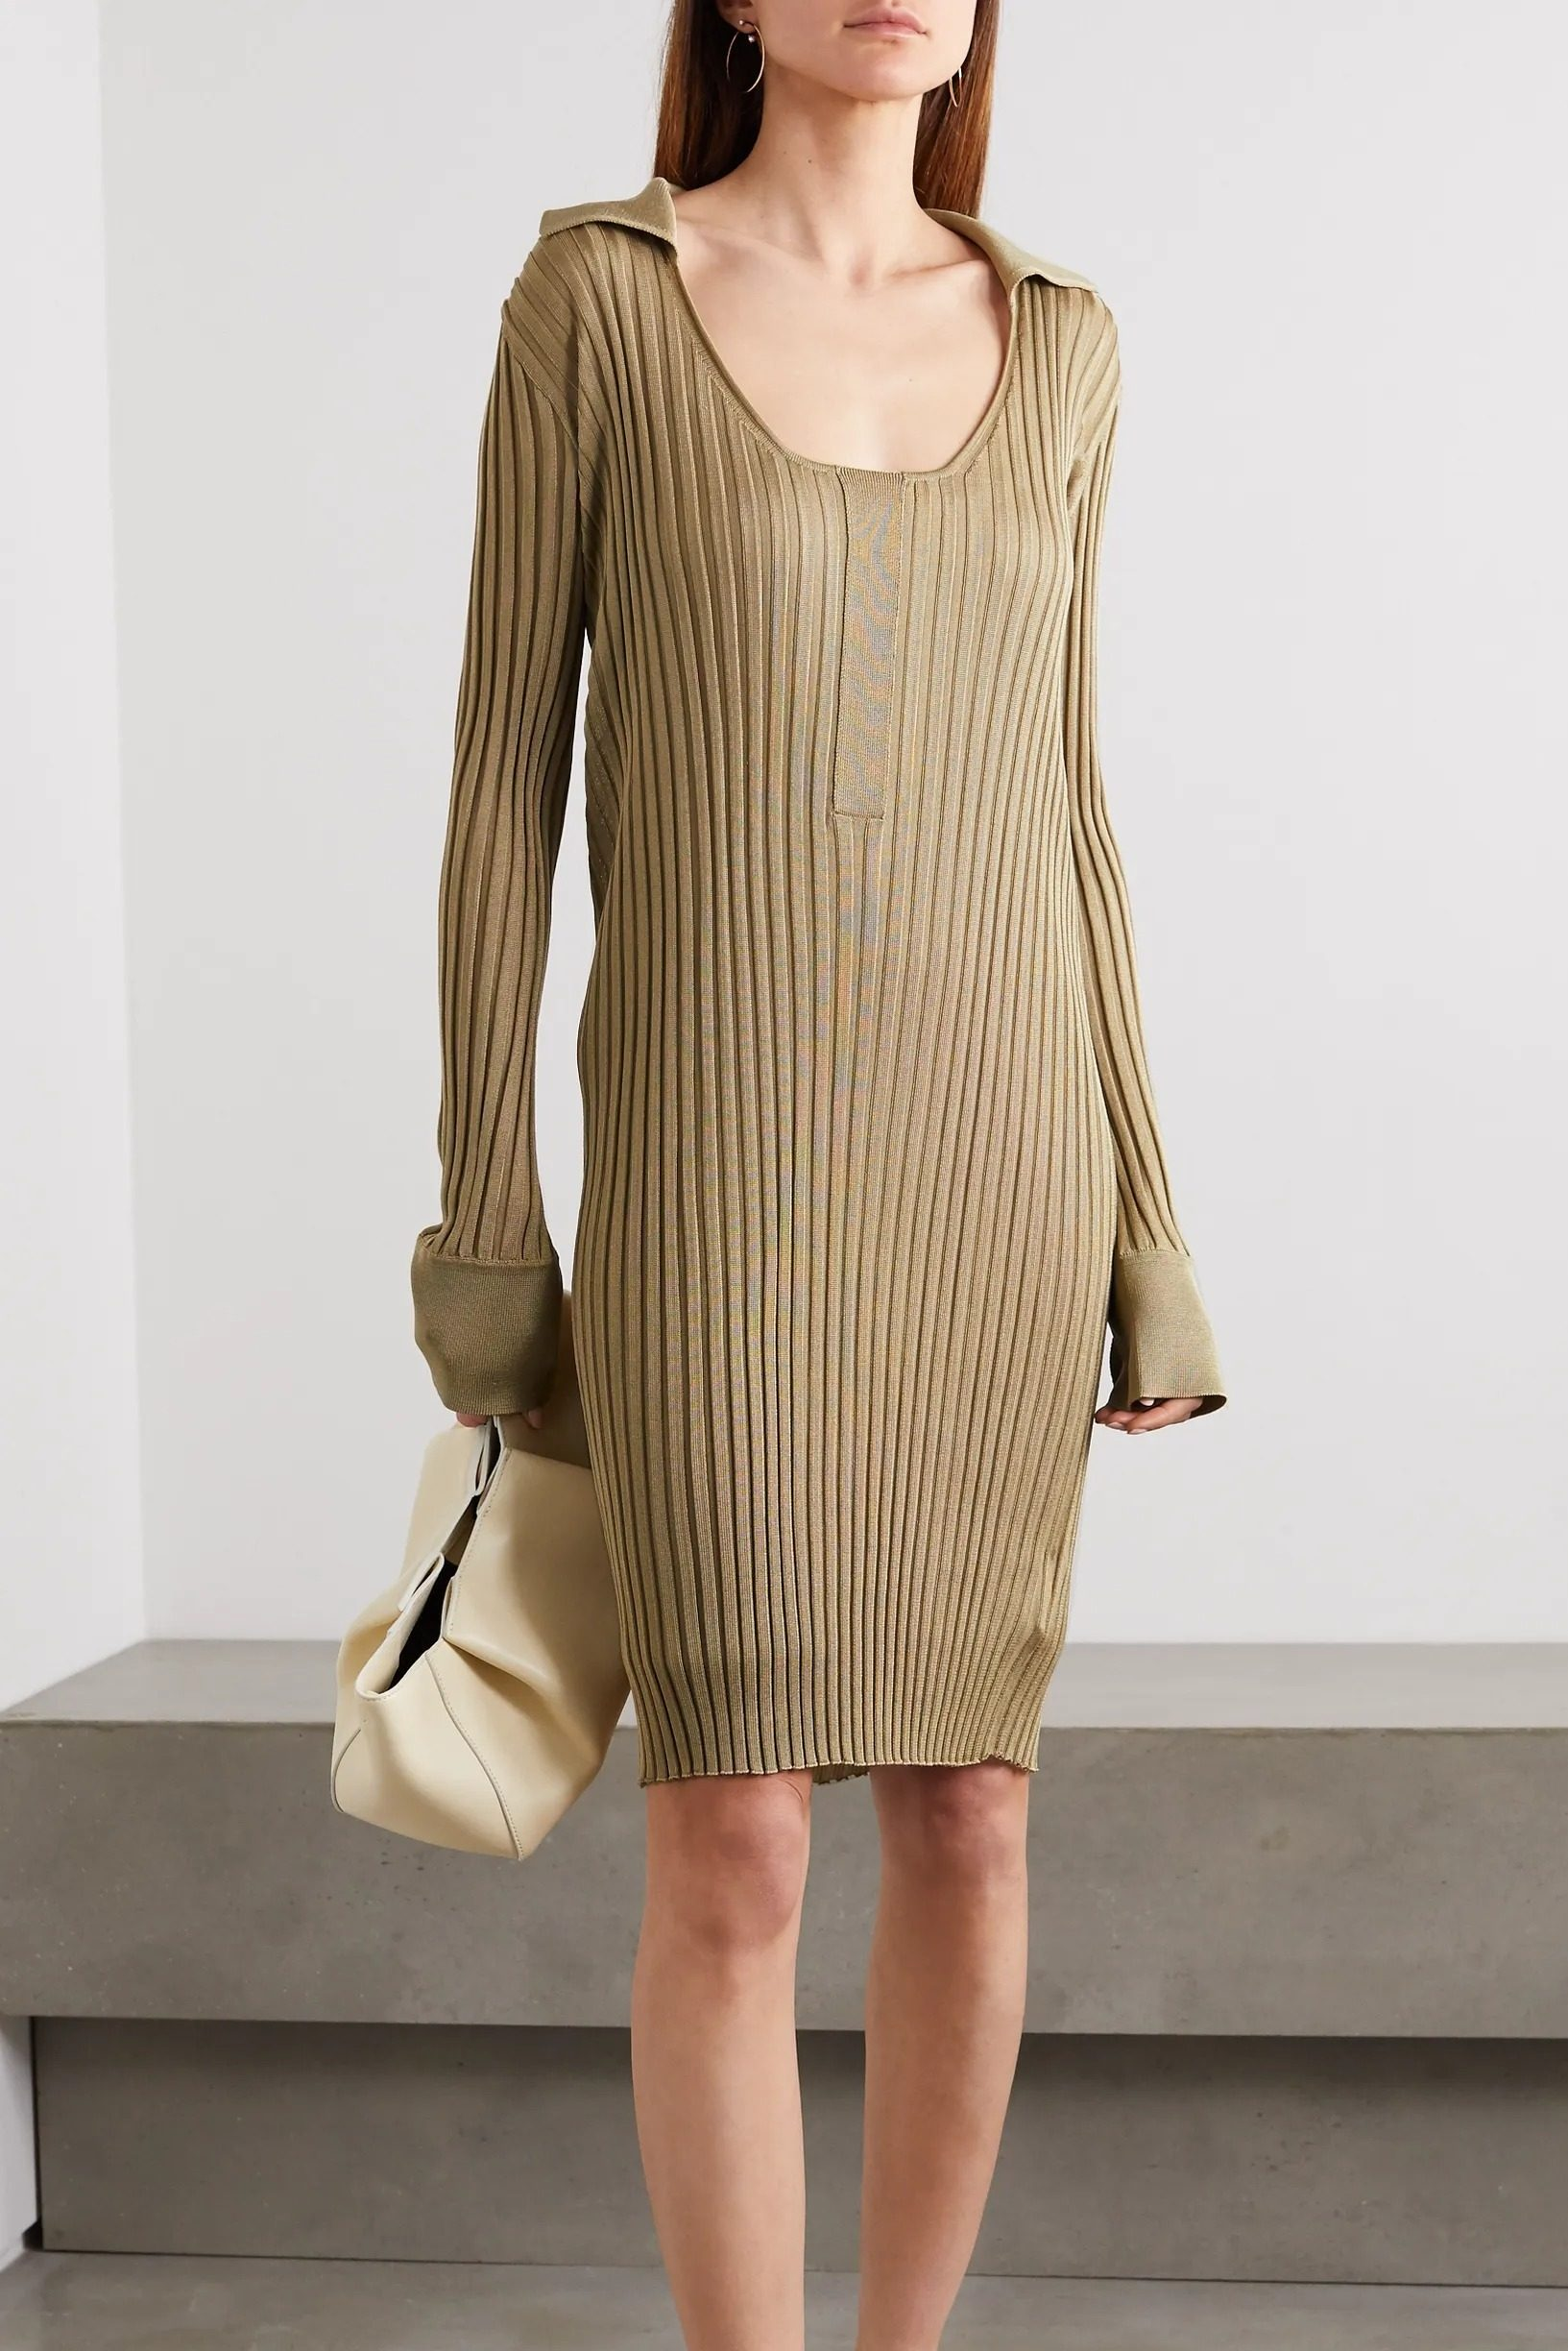 neutral knit dresses